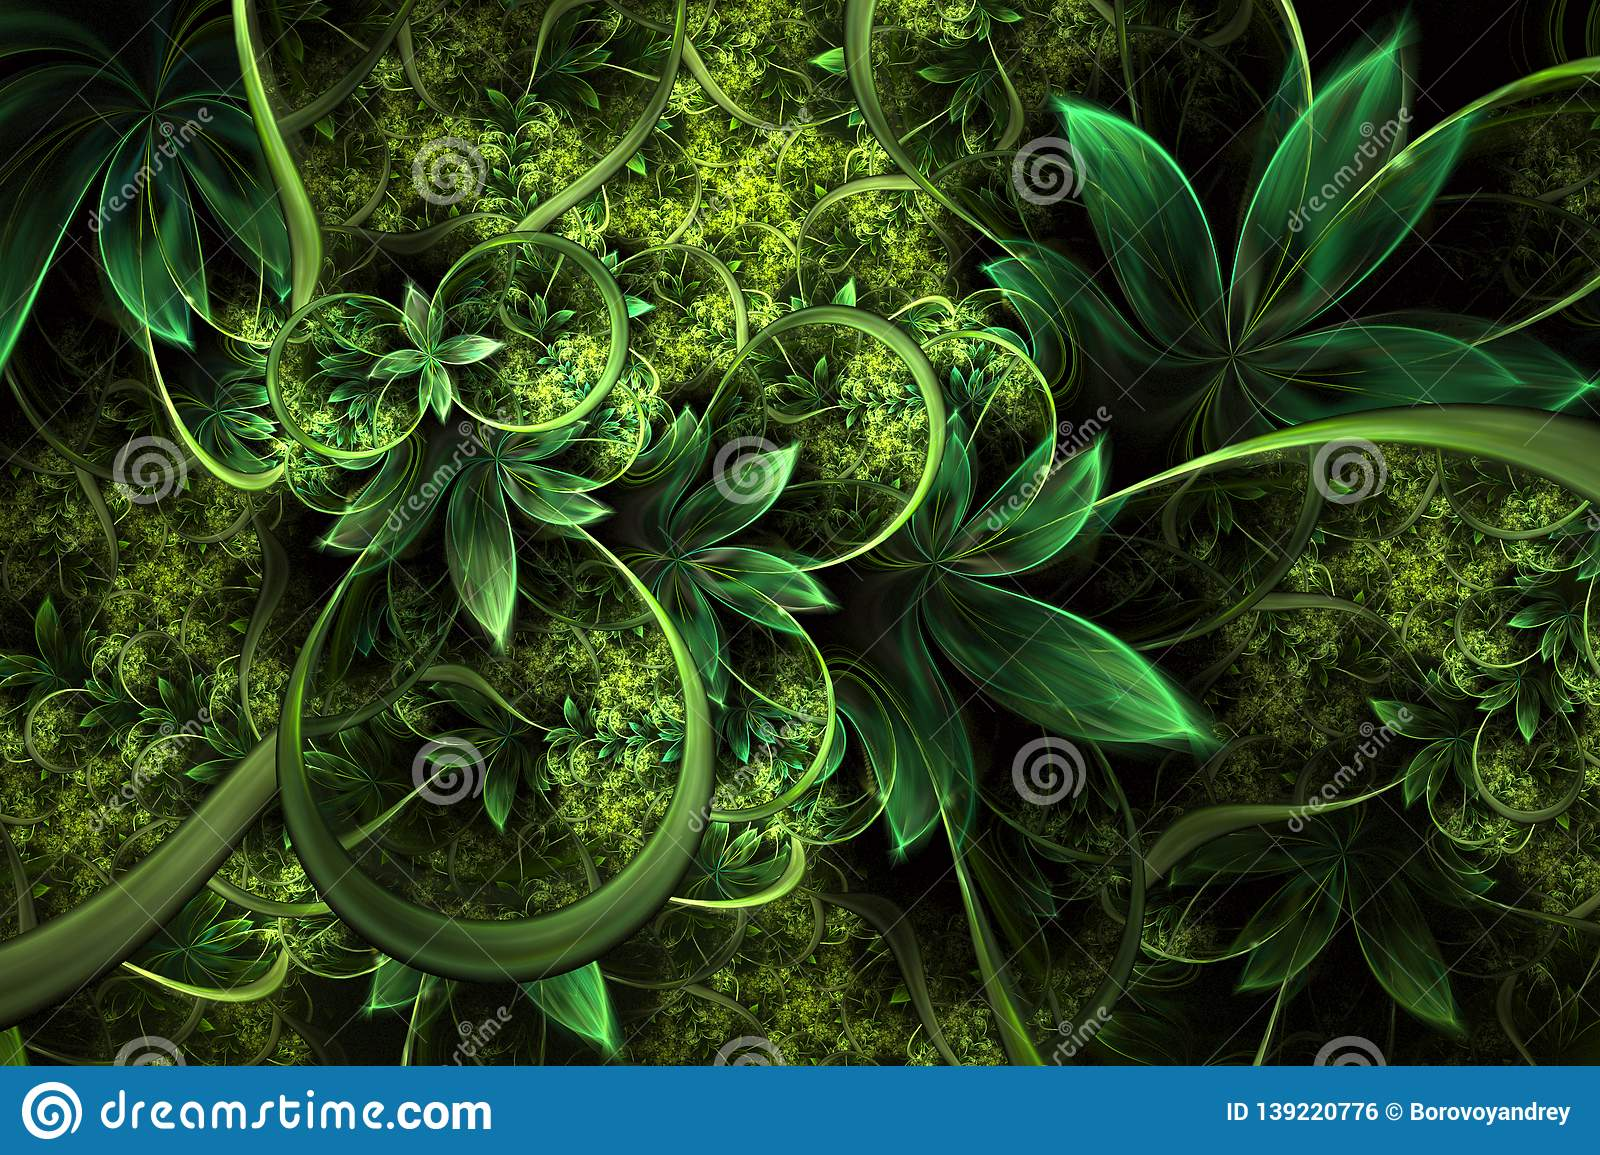 Abstract Computer Generated Plant Fractal Design Digital